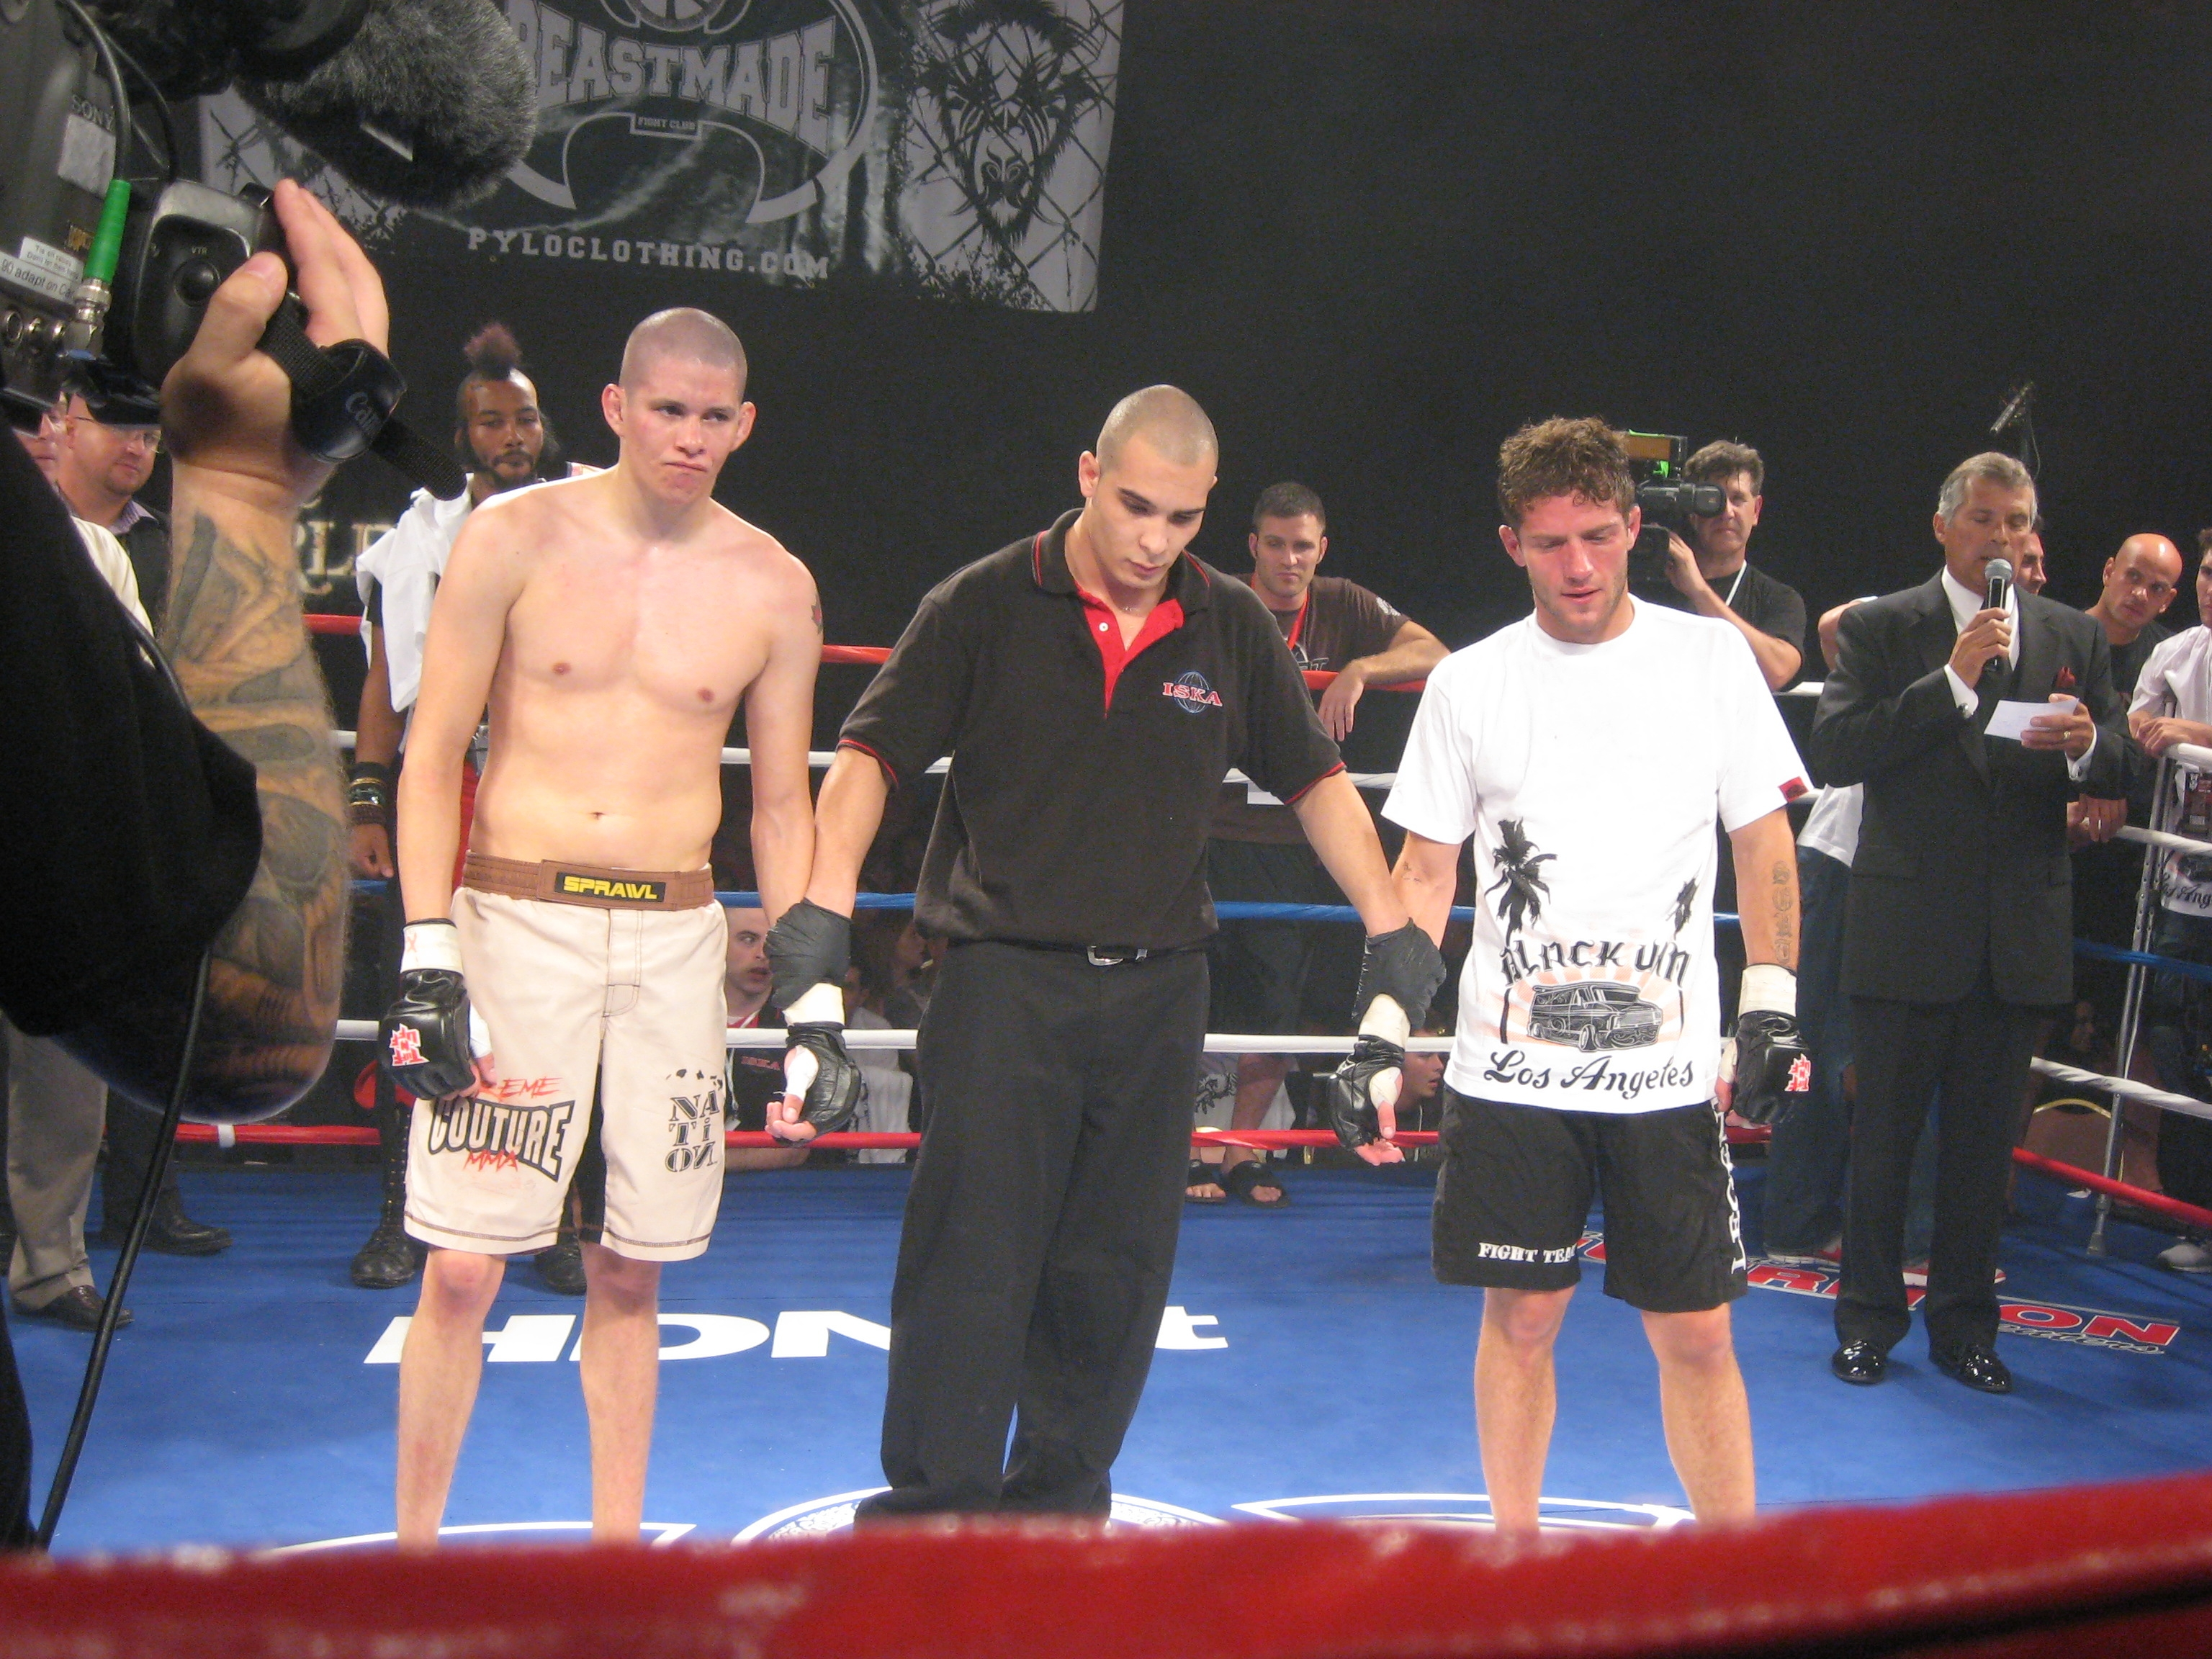 The third match between Chris Brady and Jimmy Jones ended in controversy.